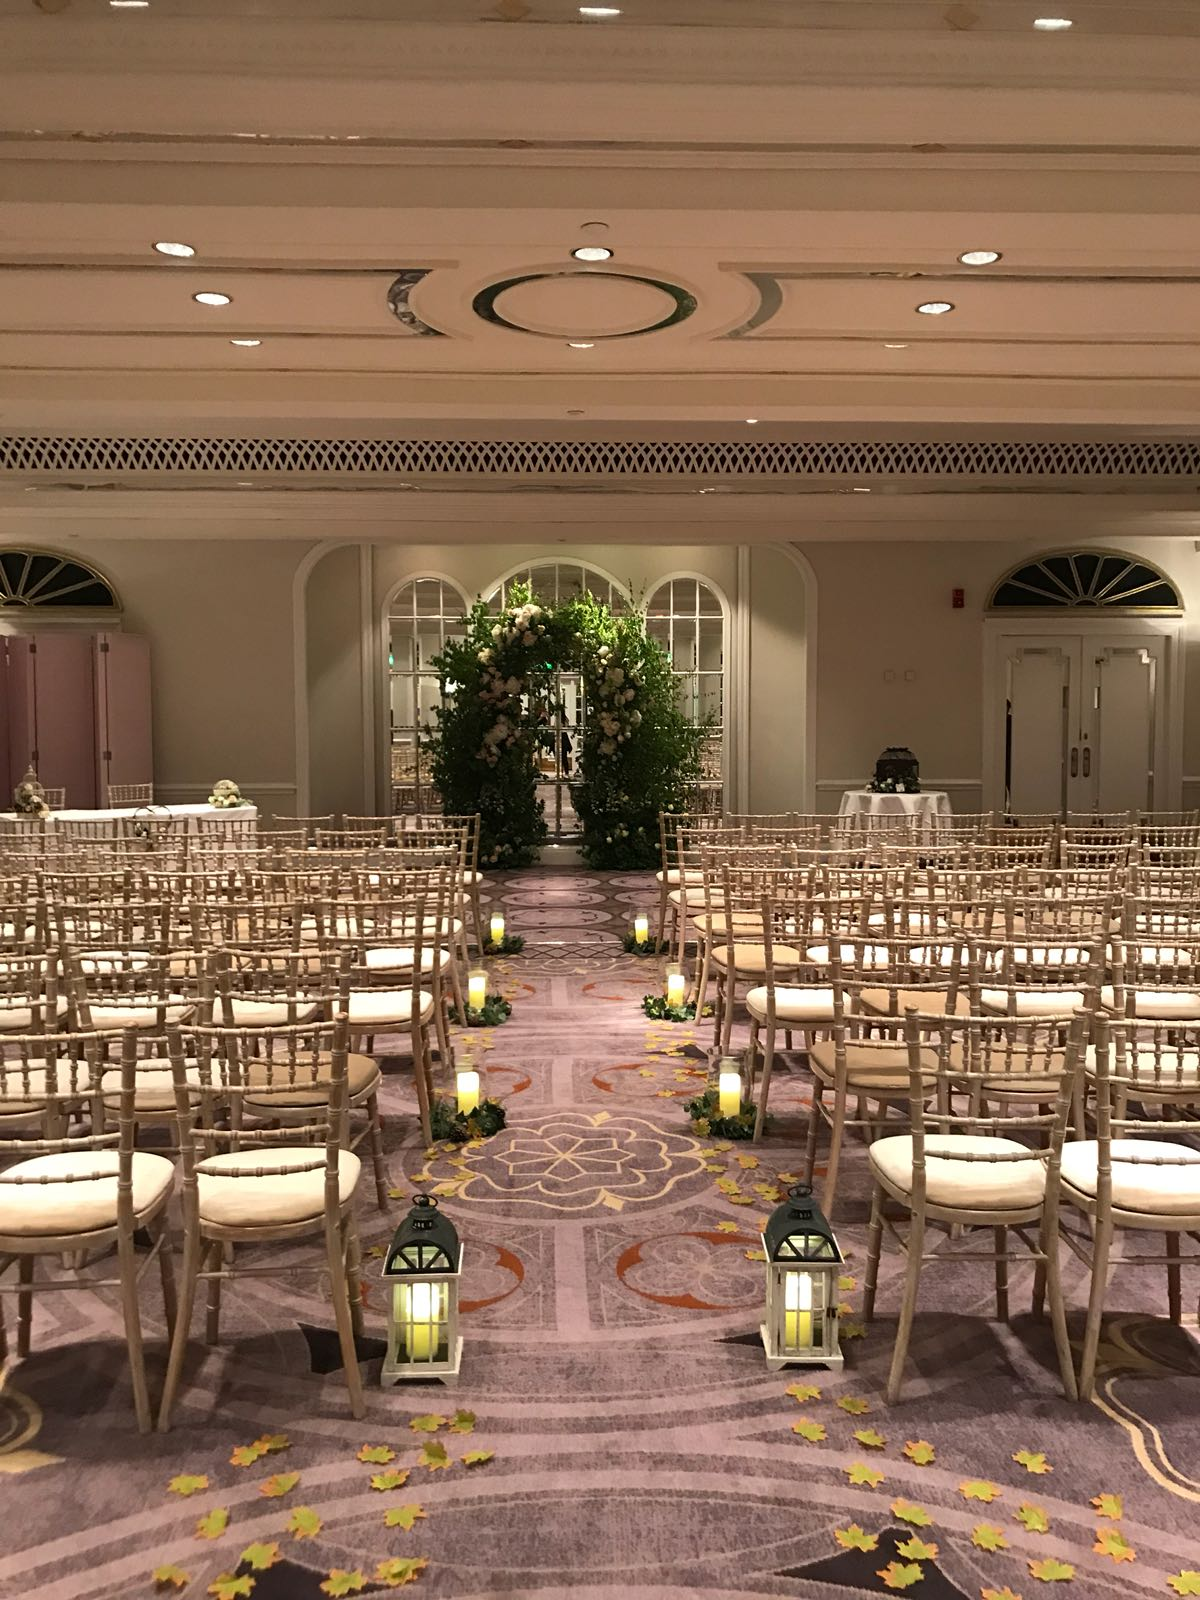 Ceremony Room at the Sheraton Grand